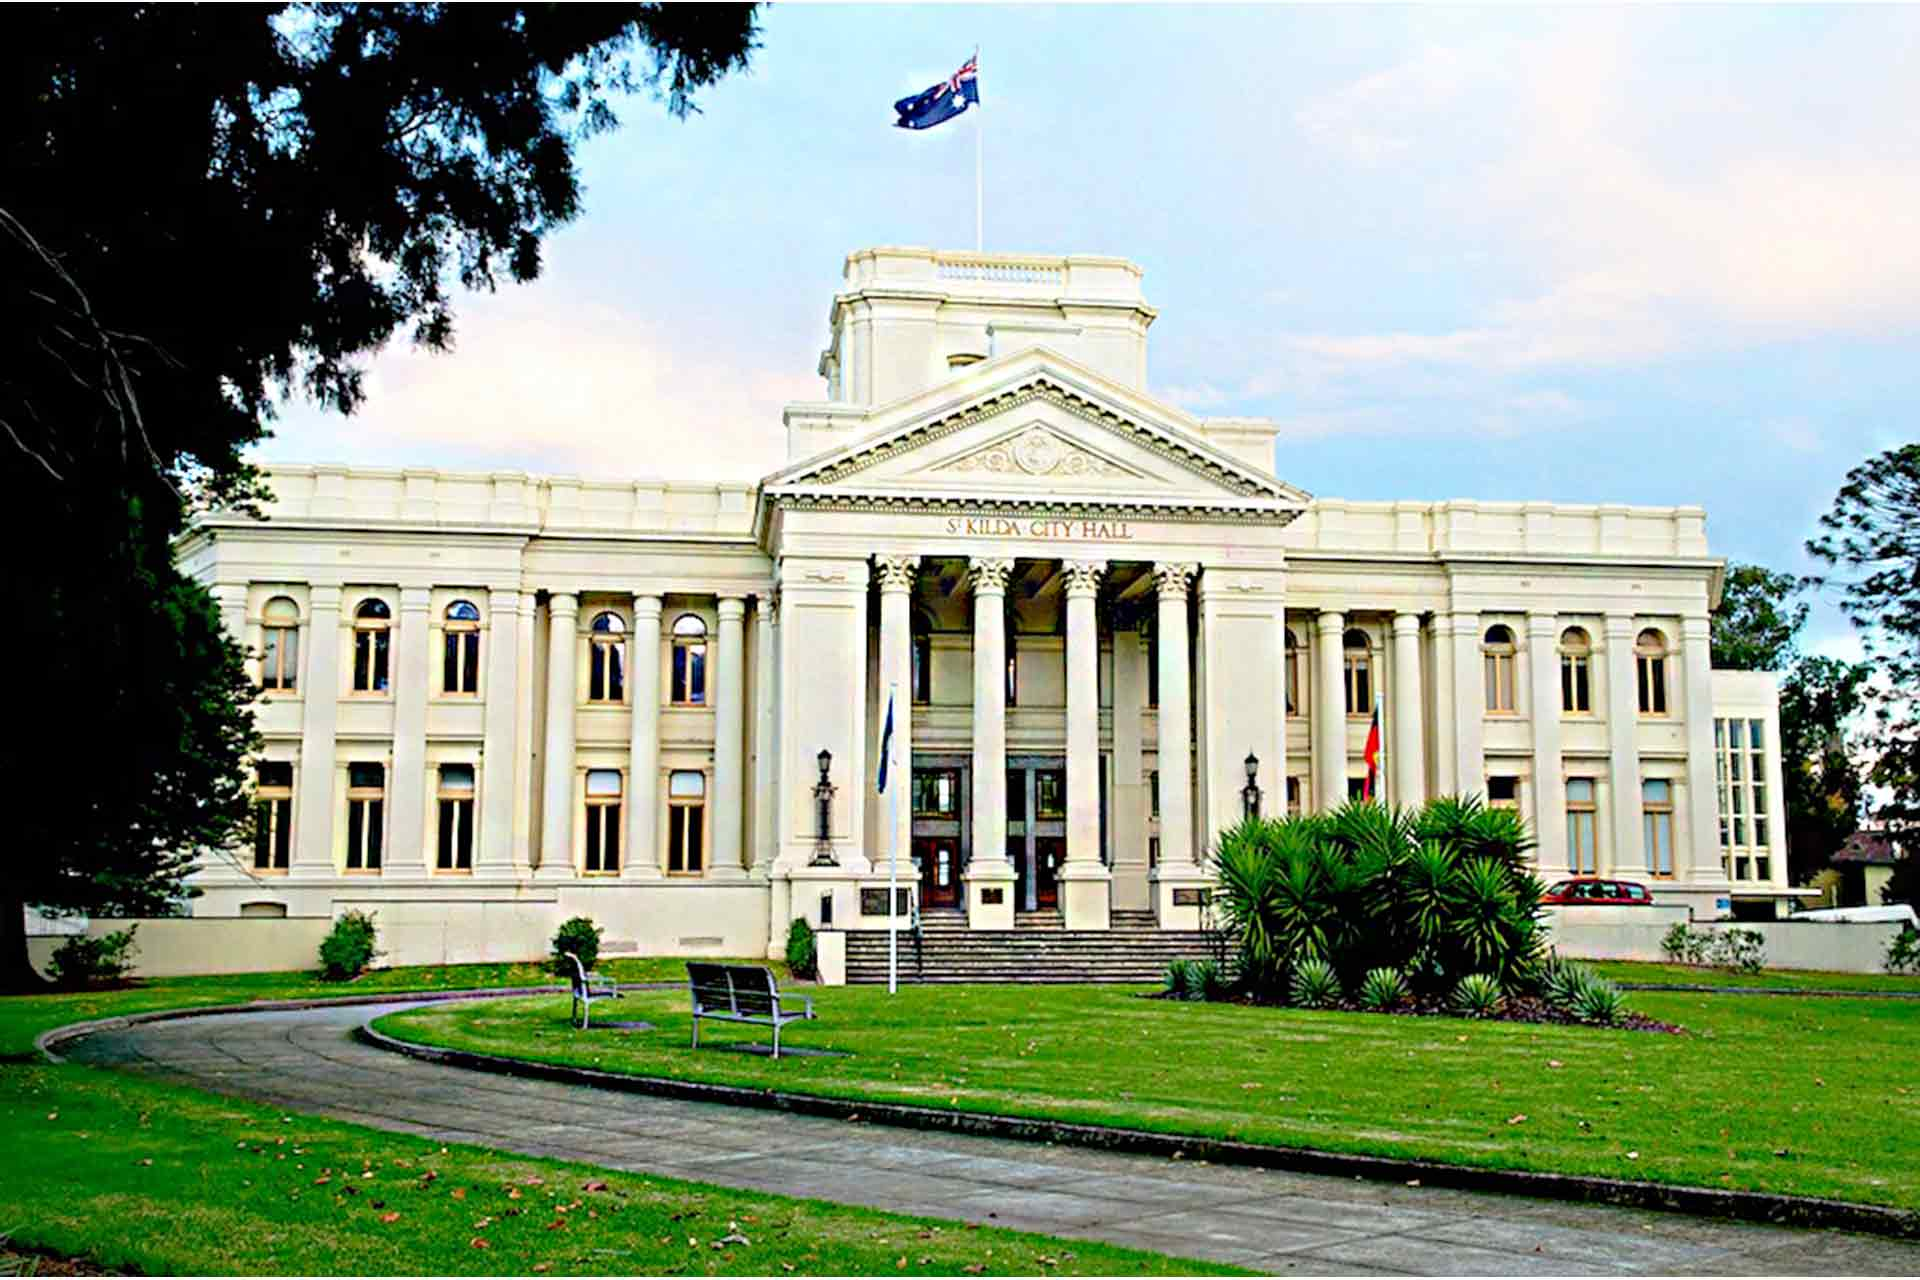 St Kilda Town Hall Venue Hire